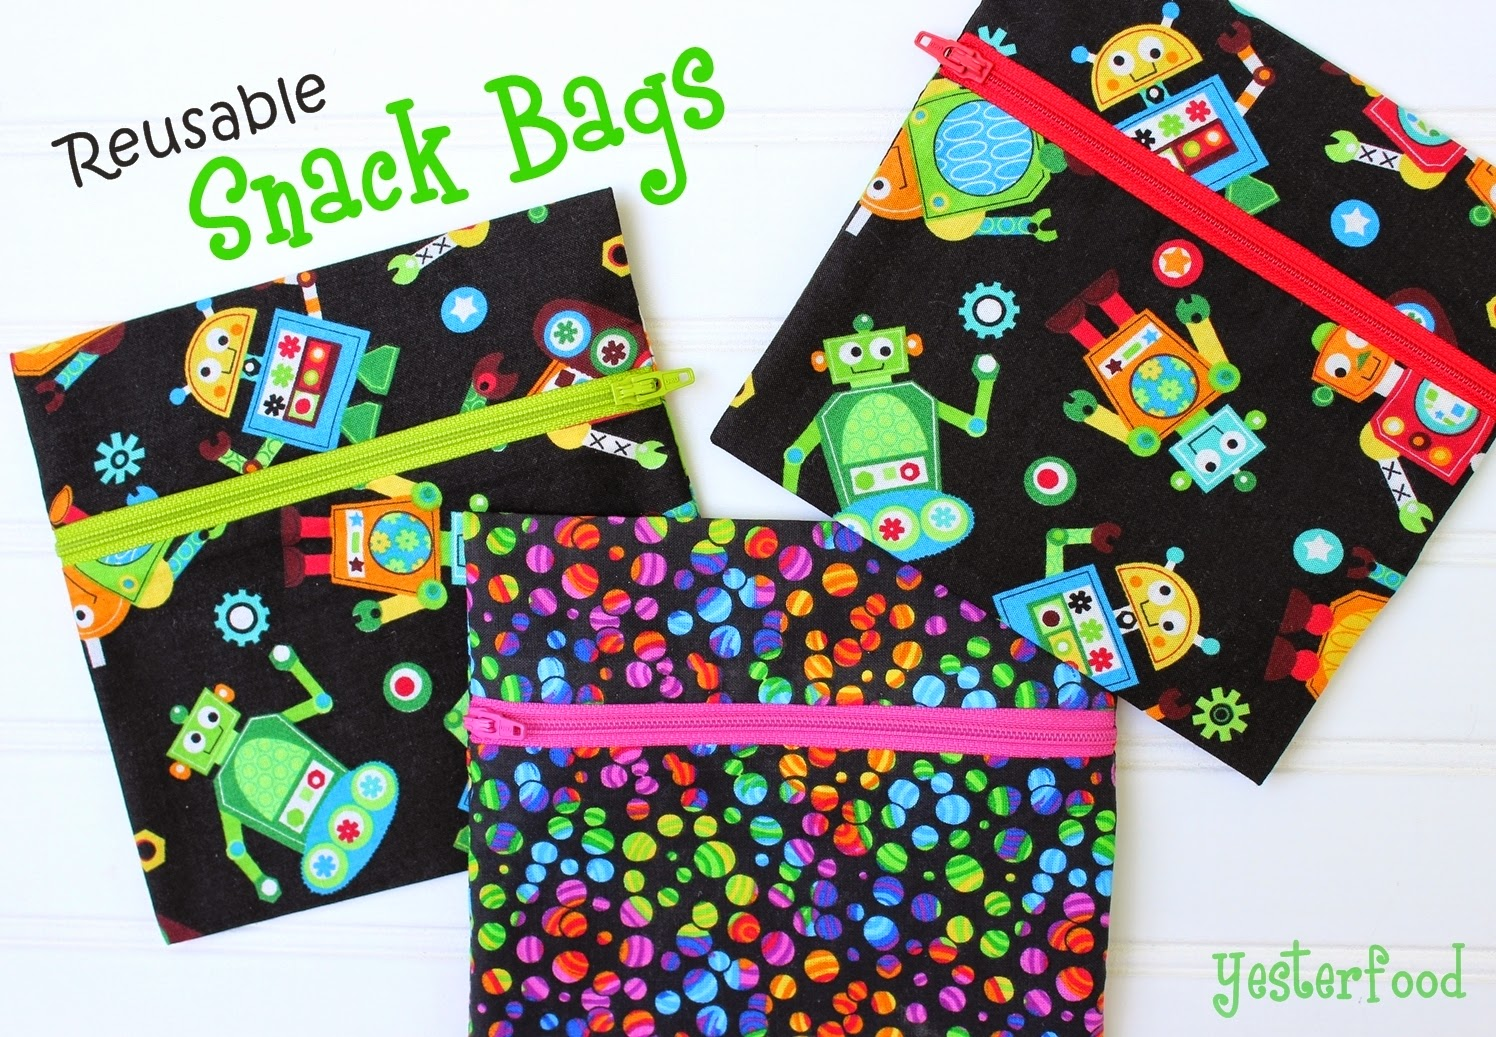 Yesterfood Reusable Snack Bags